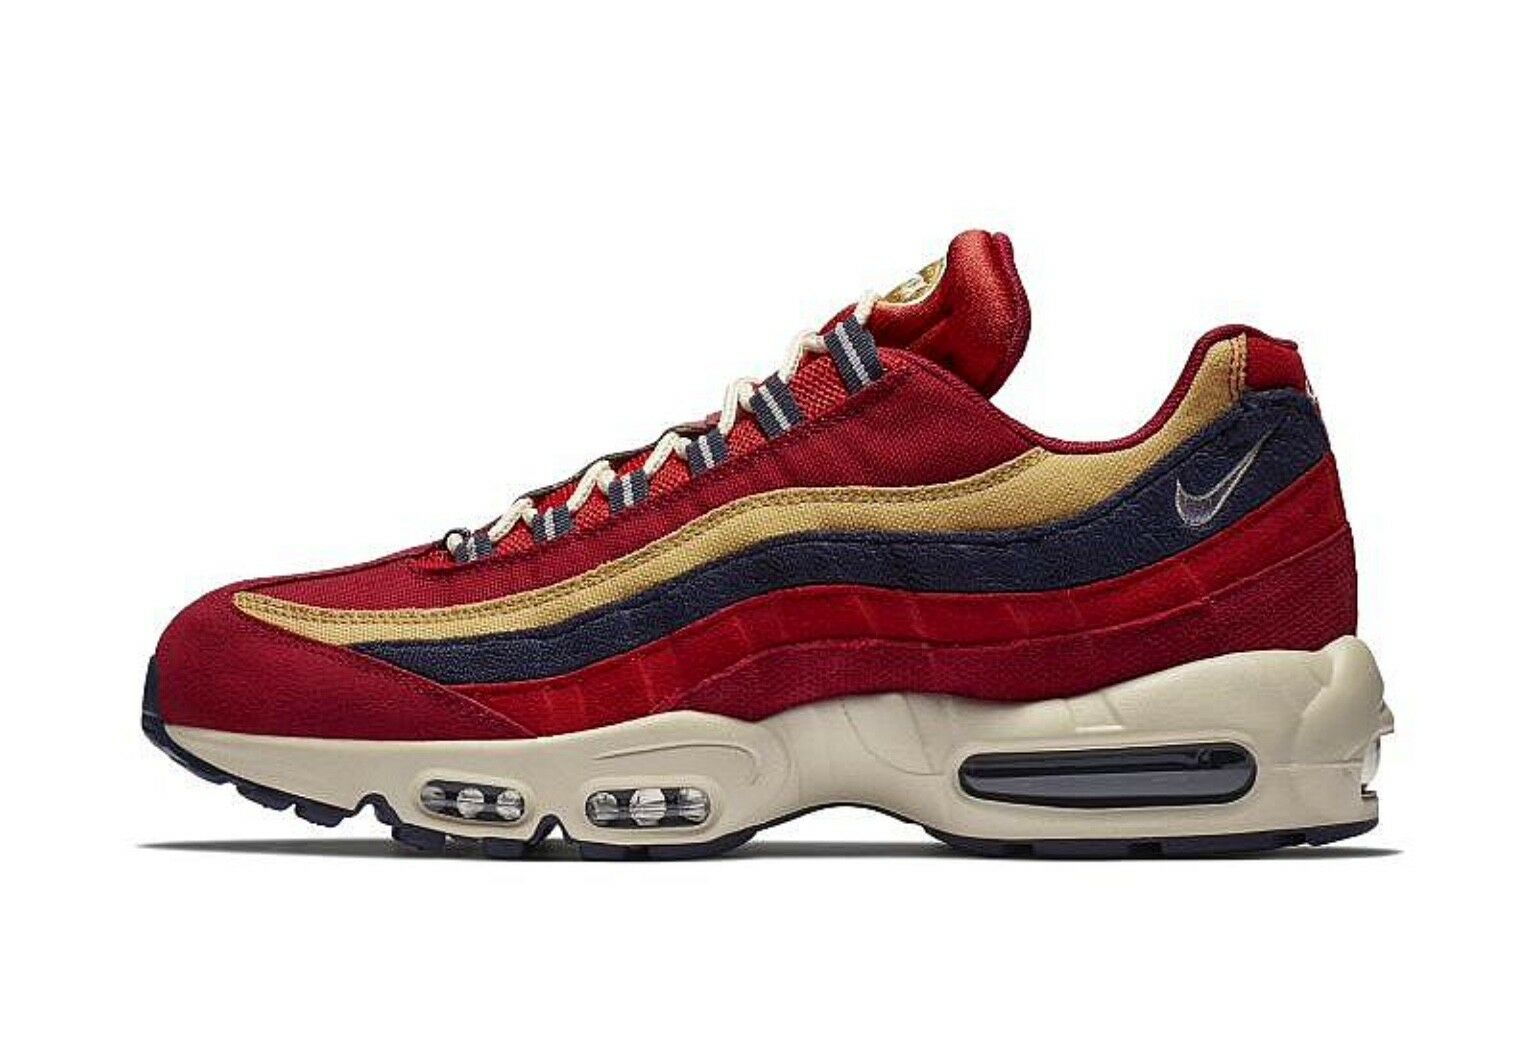 Nike Air Max 95 PRM Red Crush Wheat gold Sample 538416-603 UK8 EU42.5 US9